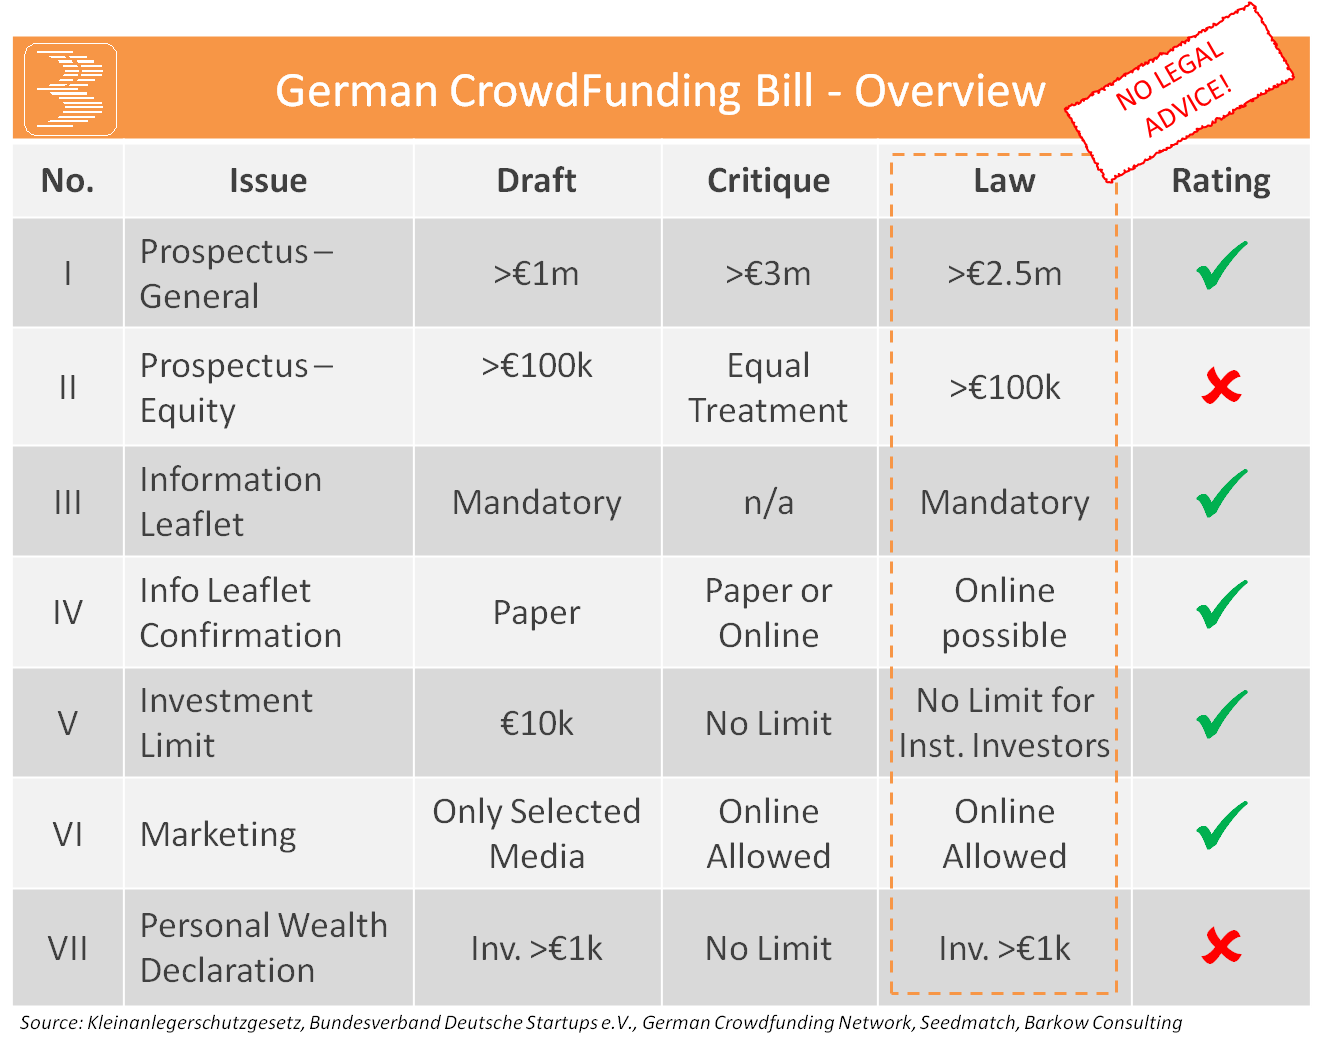 German_CrowdFunding_Bill